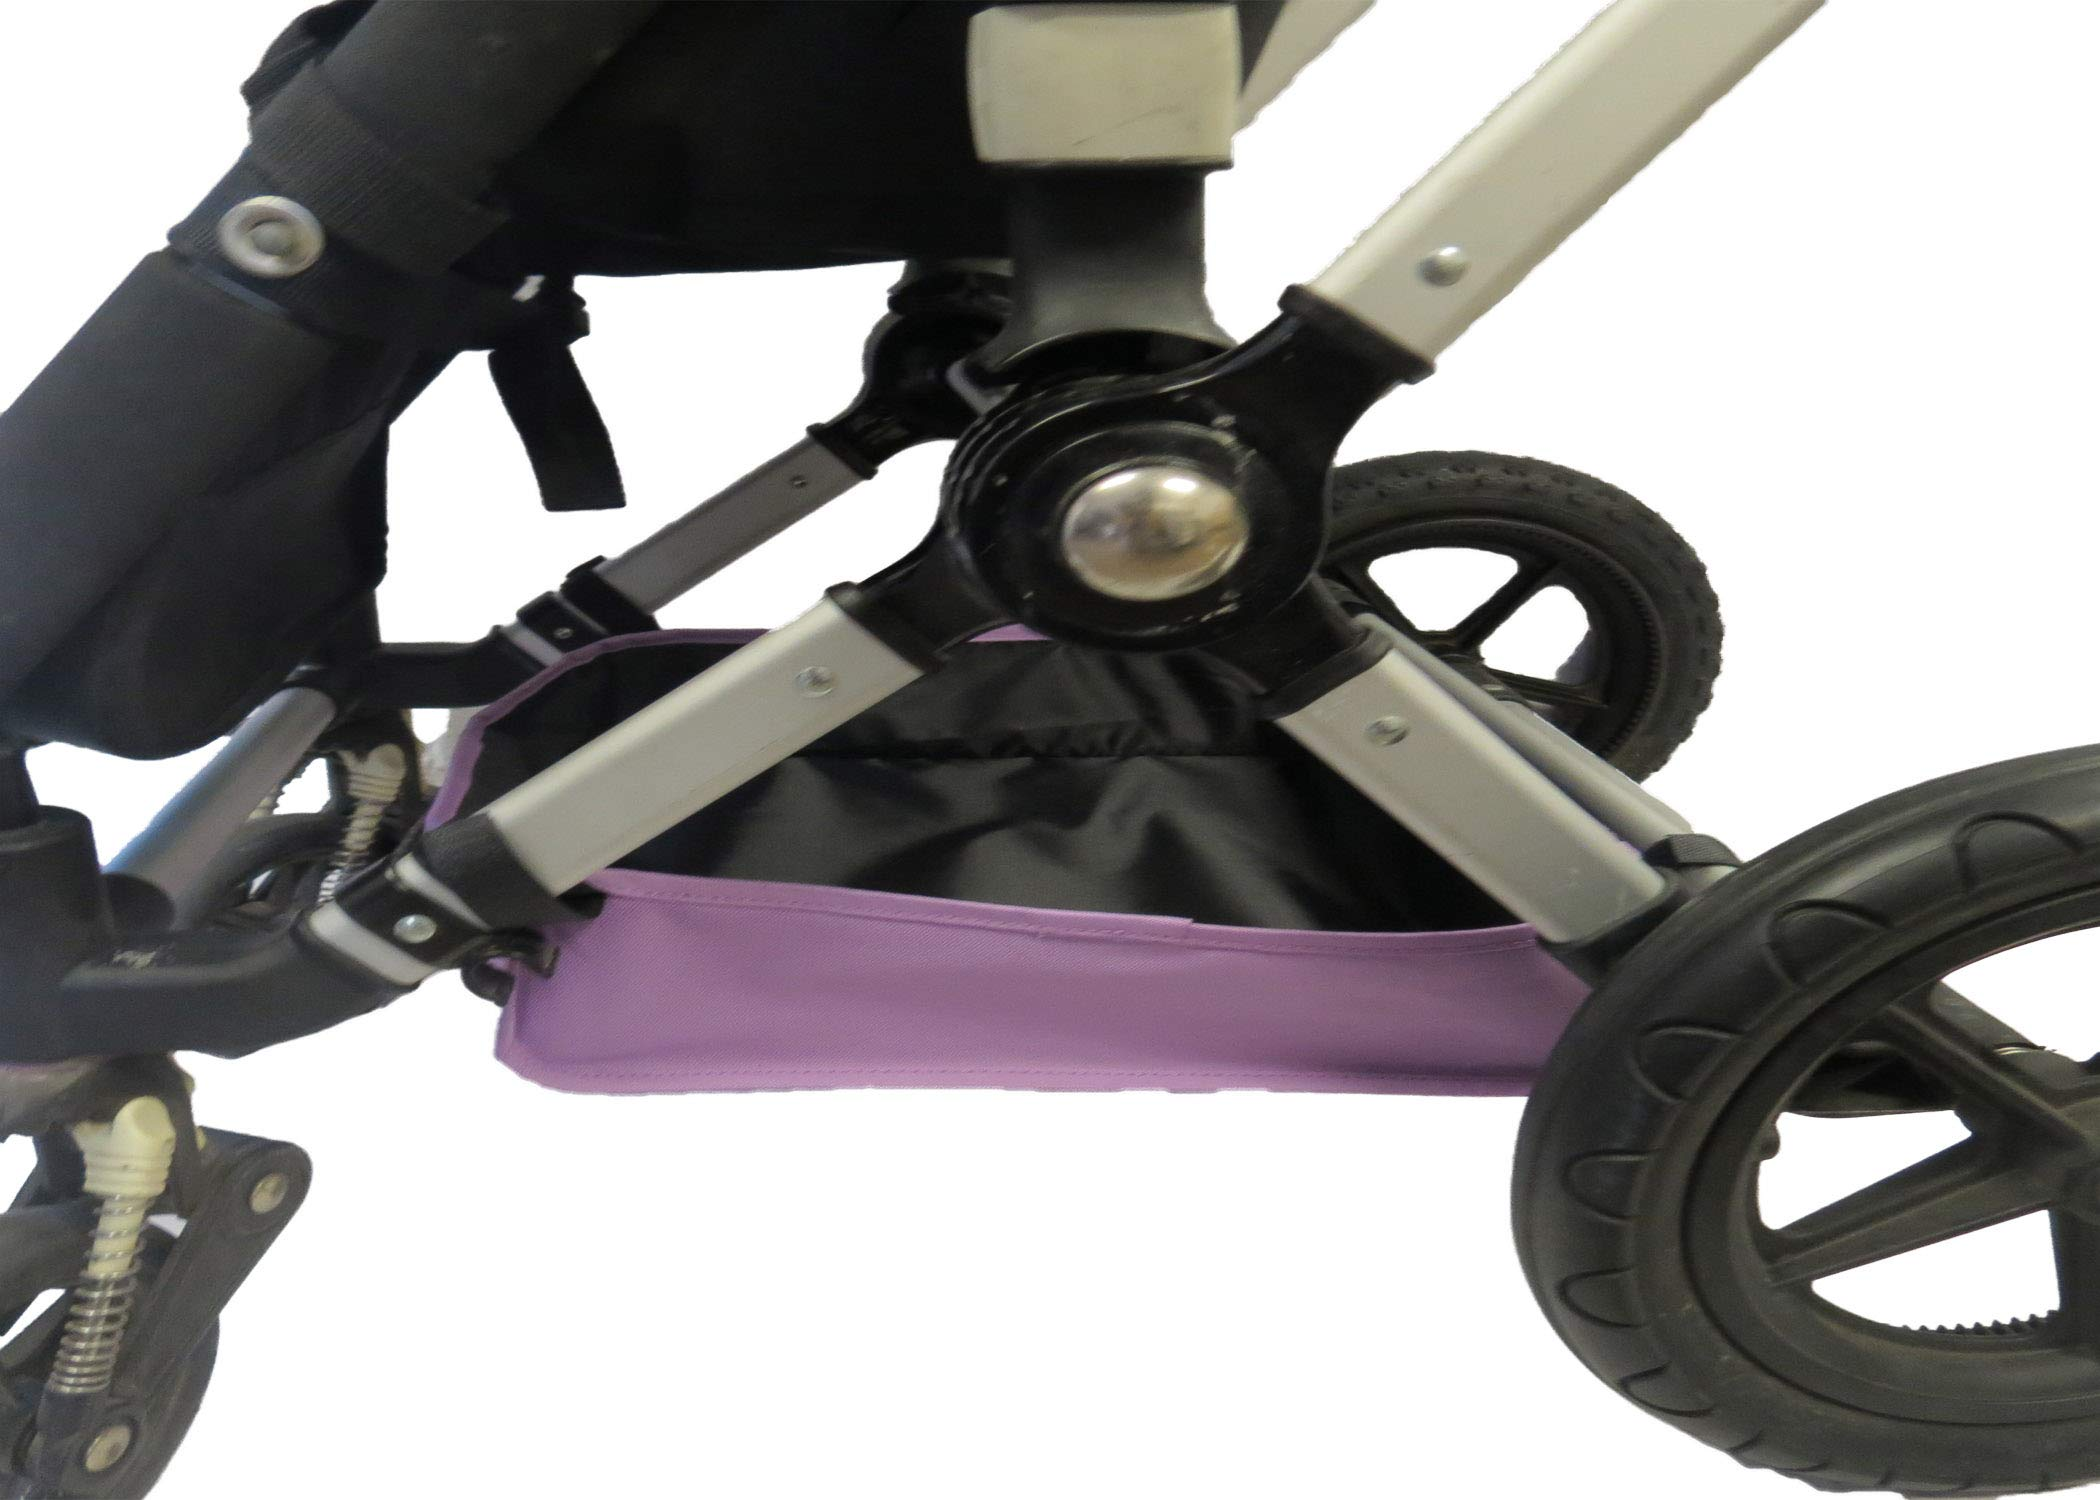 Light Purple Sun Shade Canopy with Wires and Under Seat Storage Basket Plus Free Handle Bar Covers for Bugaboo Cameleon 1, 2, 3, Frog Baby Child Strollers by Ponini (Image #4)